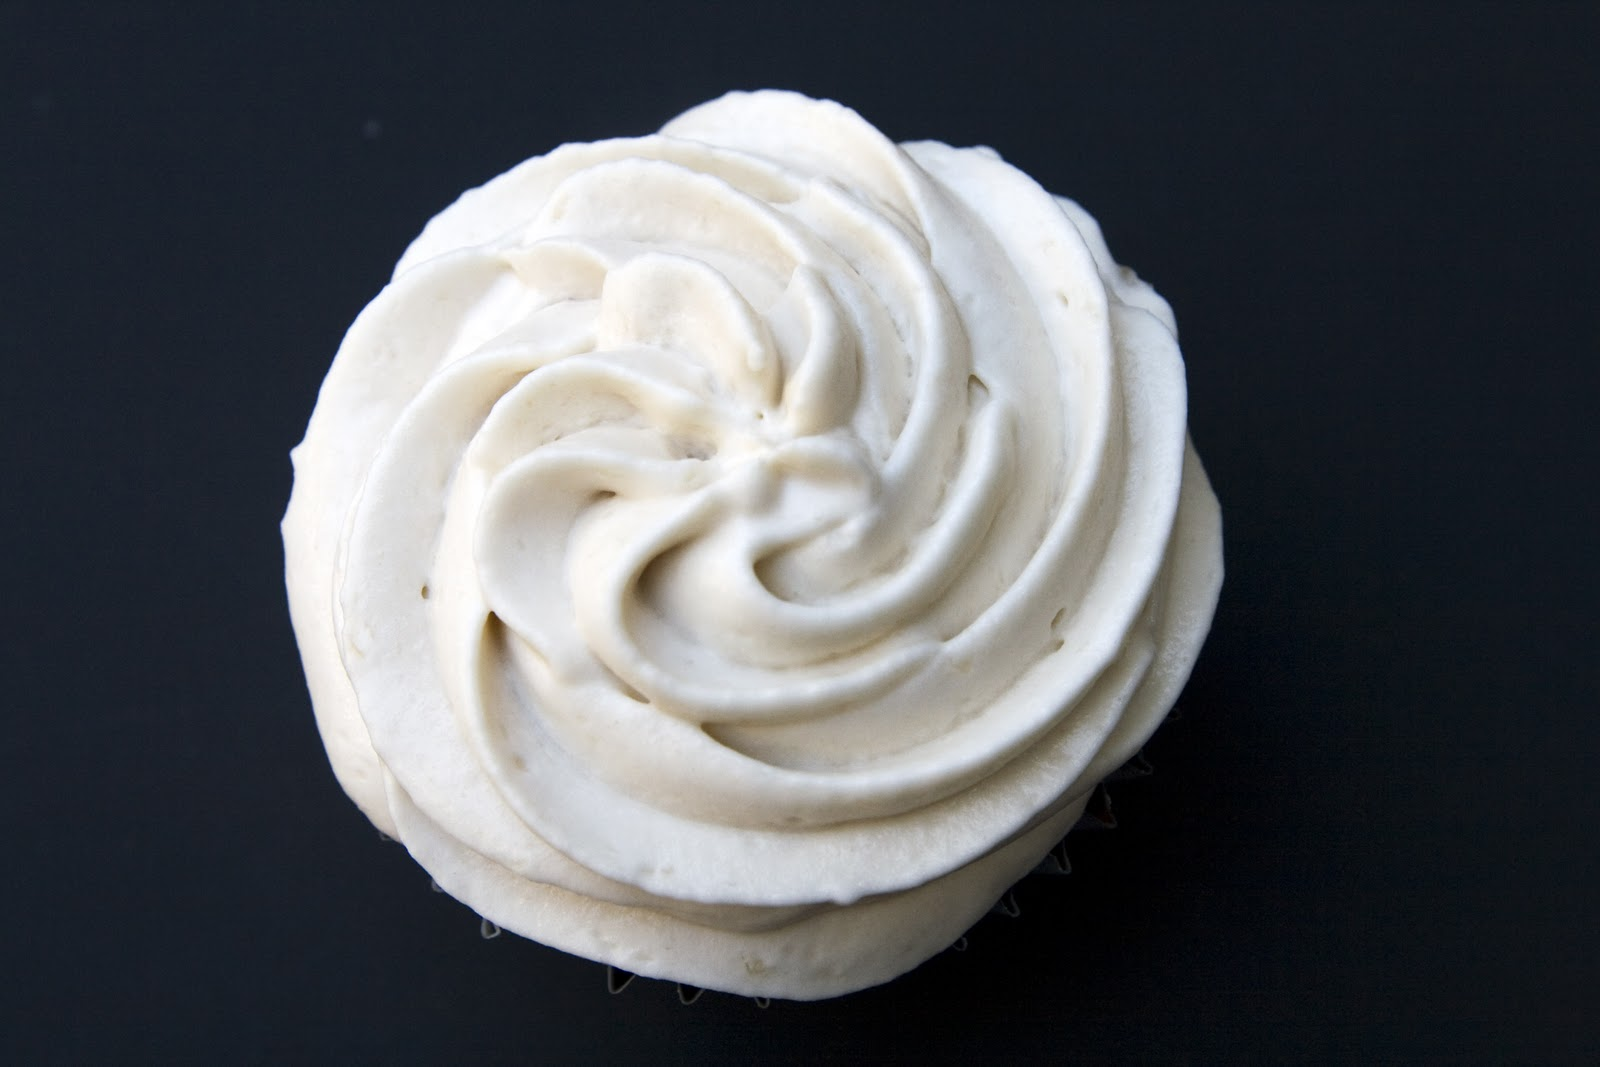 Cake Decorating Whipped Cream Frosting Recipe : Whipped Cream Frosting Recipes   Dishmaps